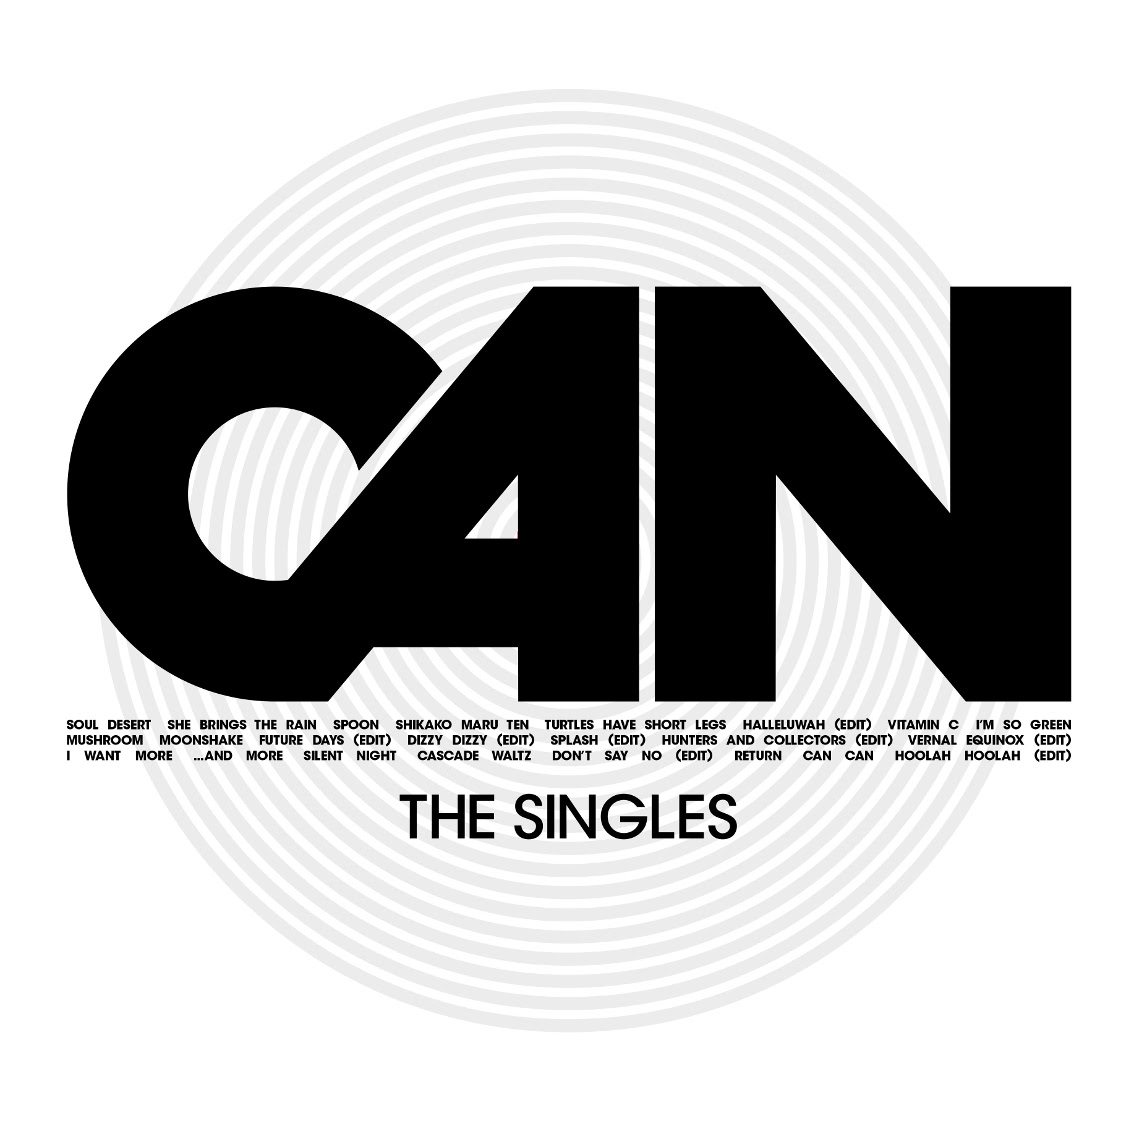 CAN announces'The Singles', a brand new collection of all of CAN's single releases